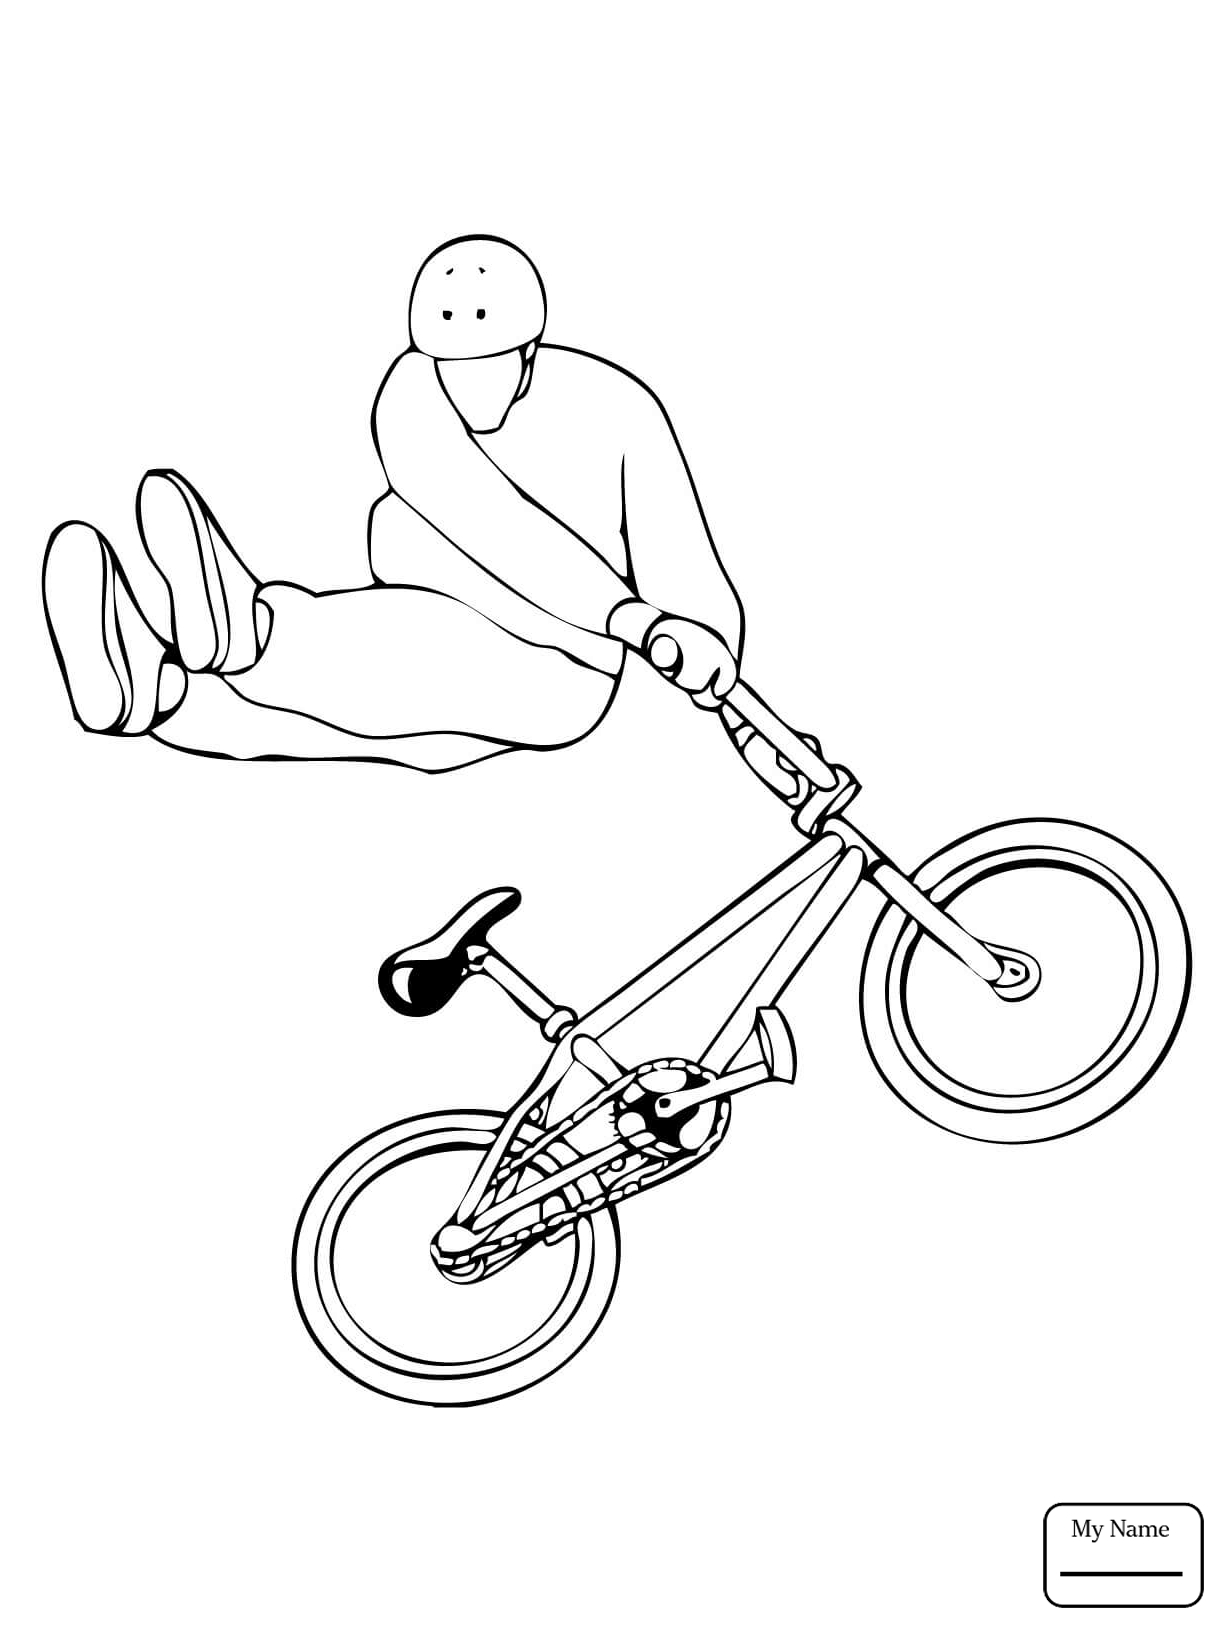 1224x1632 Bmx Coloring Page Coloring Home. Pin Drawn Motorcycle Bmx Bike 15